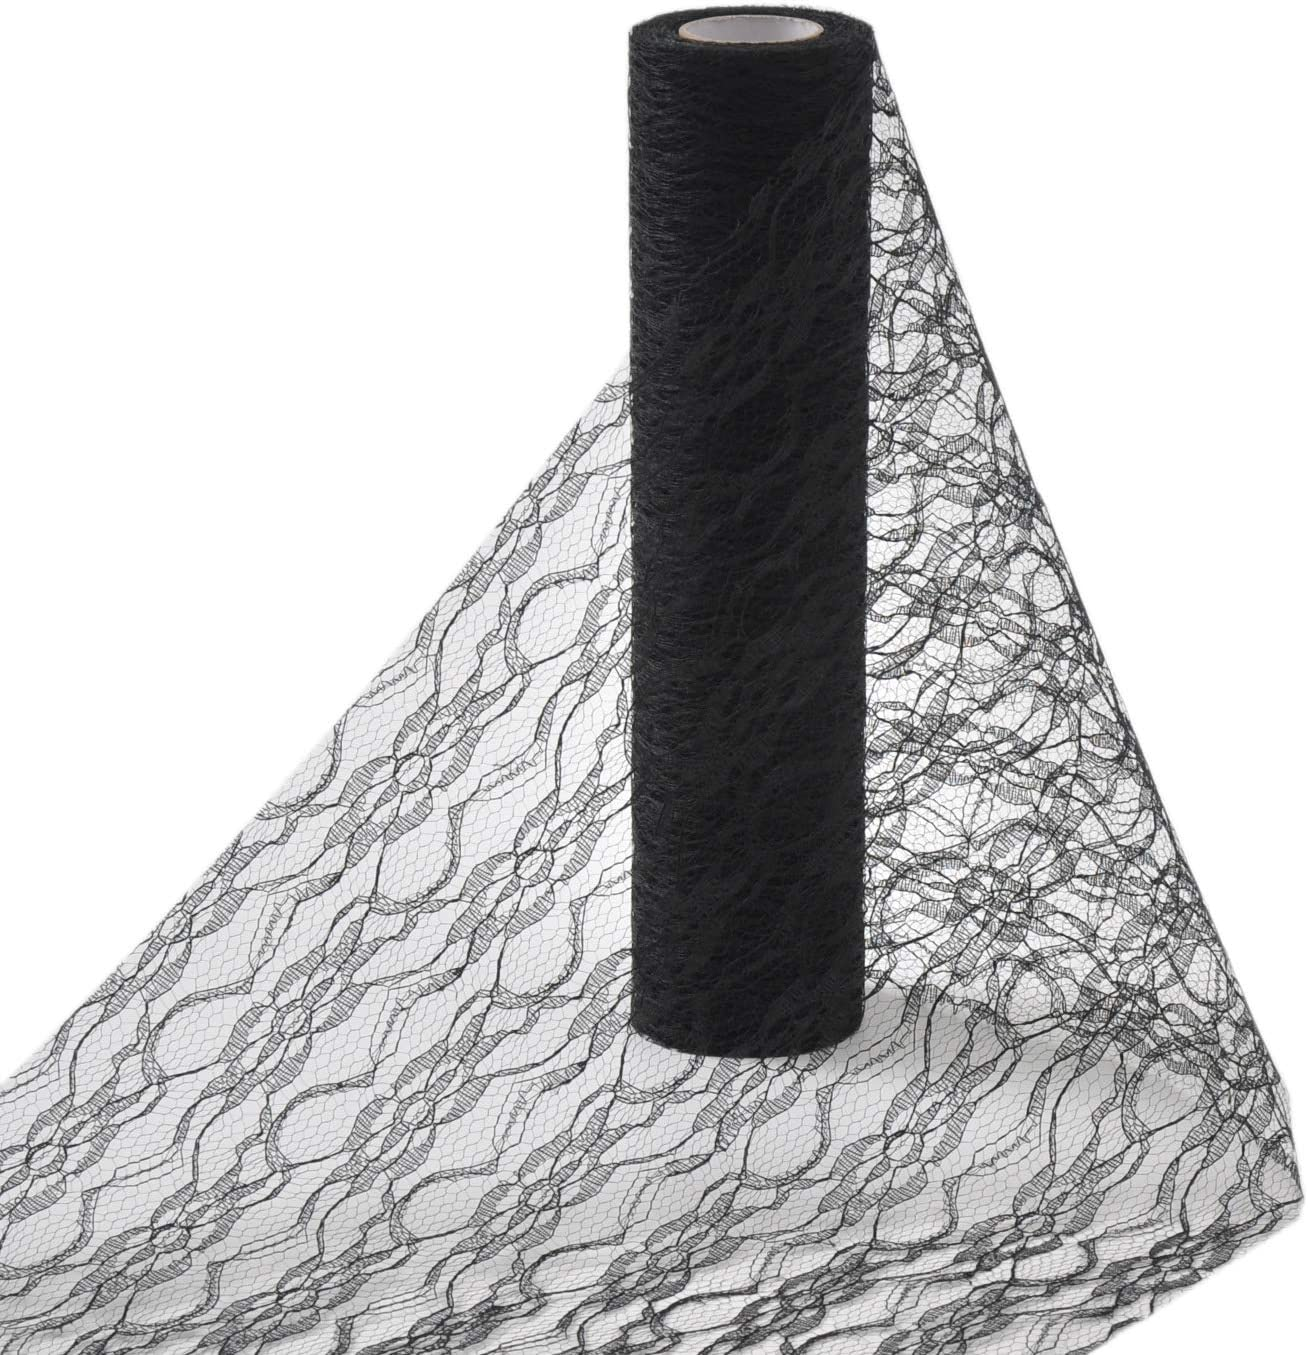 Black MingTime Lace Fabric Ribbon Roll 12 x 10 Yards Cream Floral for Burlap Lace Table Runner Vintage Chair Sash Bow DIY Wedding Party Art Craft Decoration